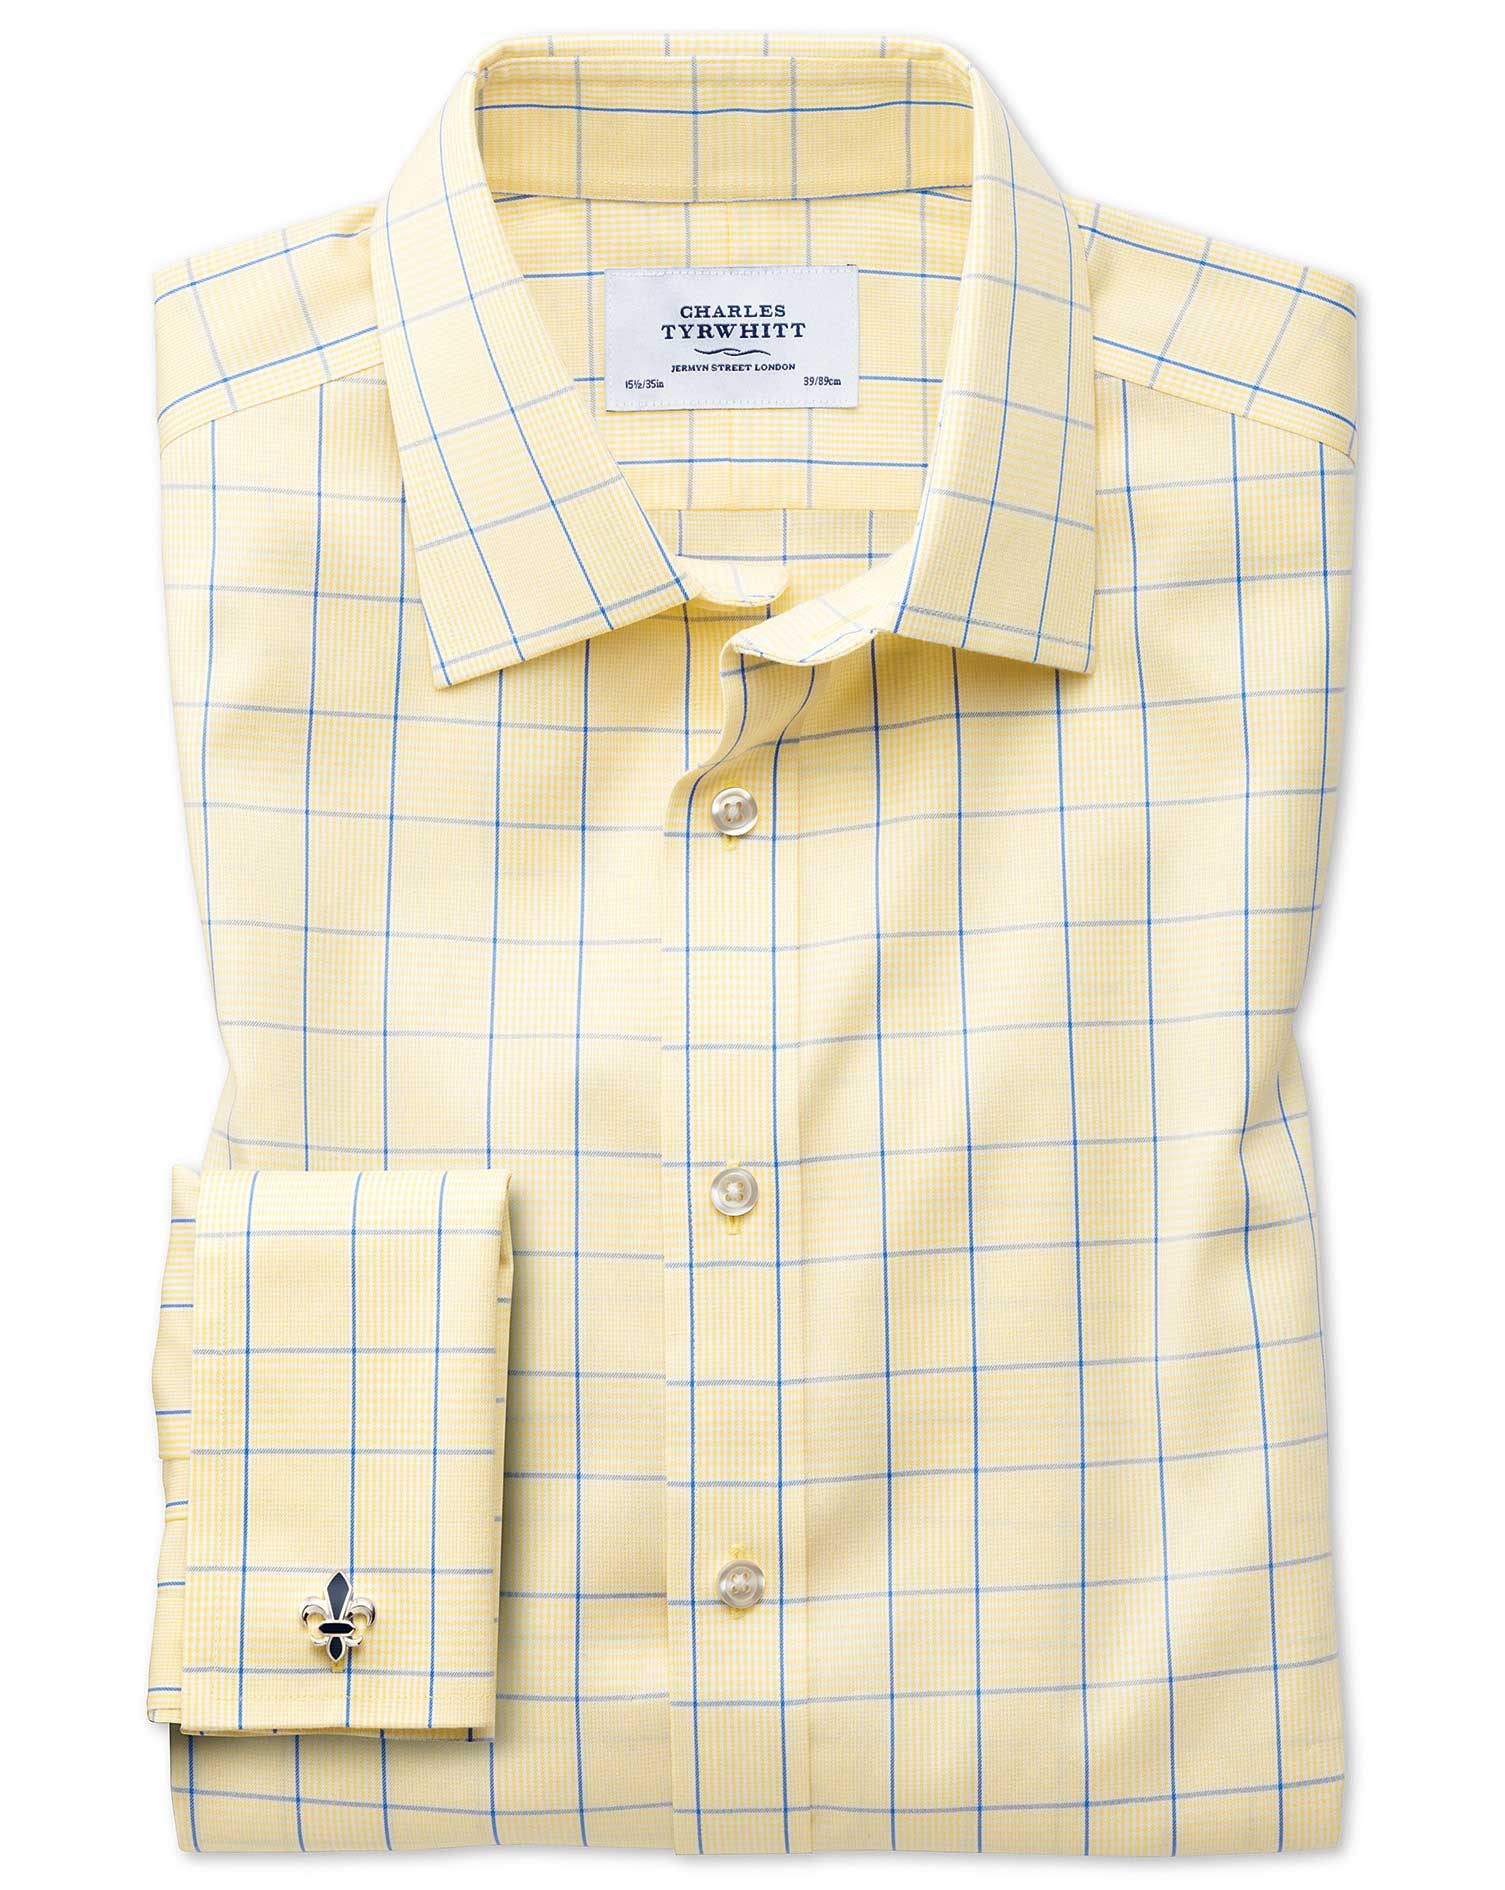 Classic Fit Non-Iron Prince Of Wales Yellow and Royal Blue Cotton Formal Shirt Double Cuff Size 15/3